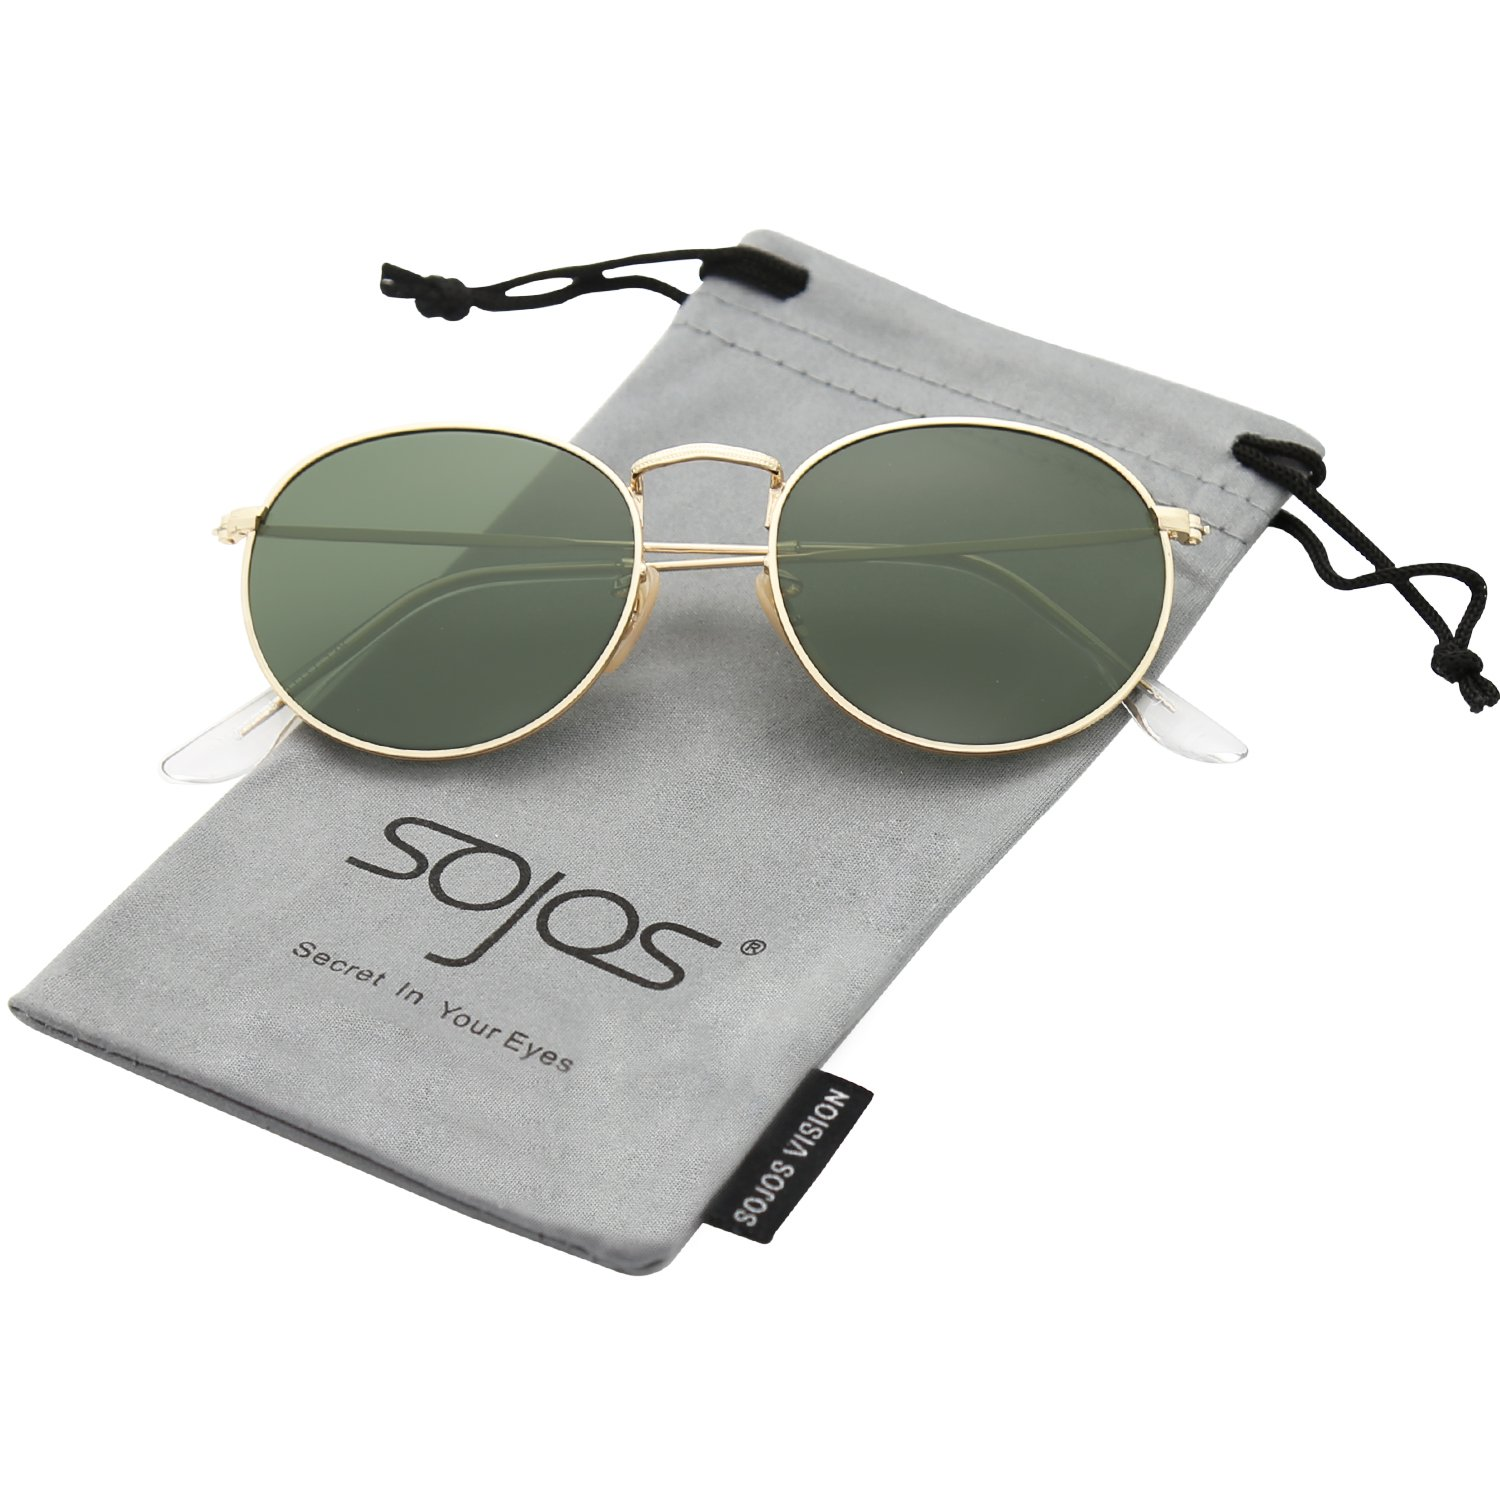 SOJOS Small Round Polarized Sunglasses Mirrored Lens Unisex Glasses SJ1014 3447 with Gold Frame/G15 Lens